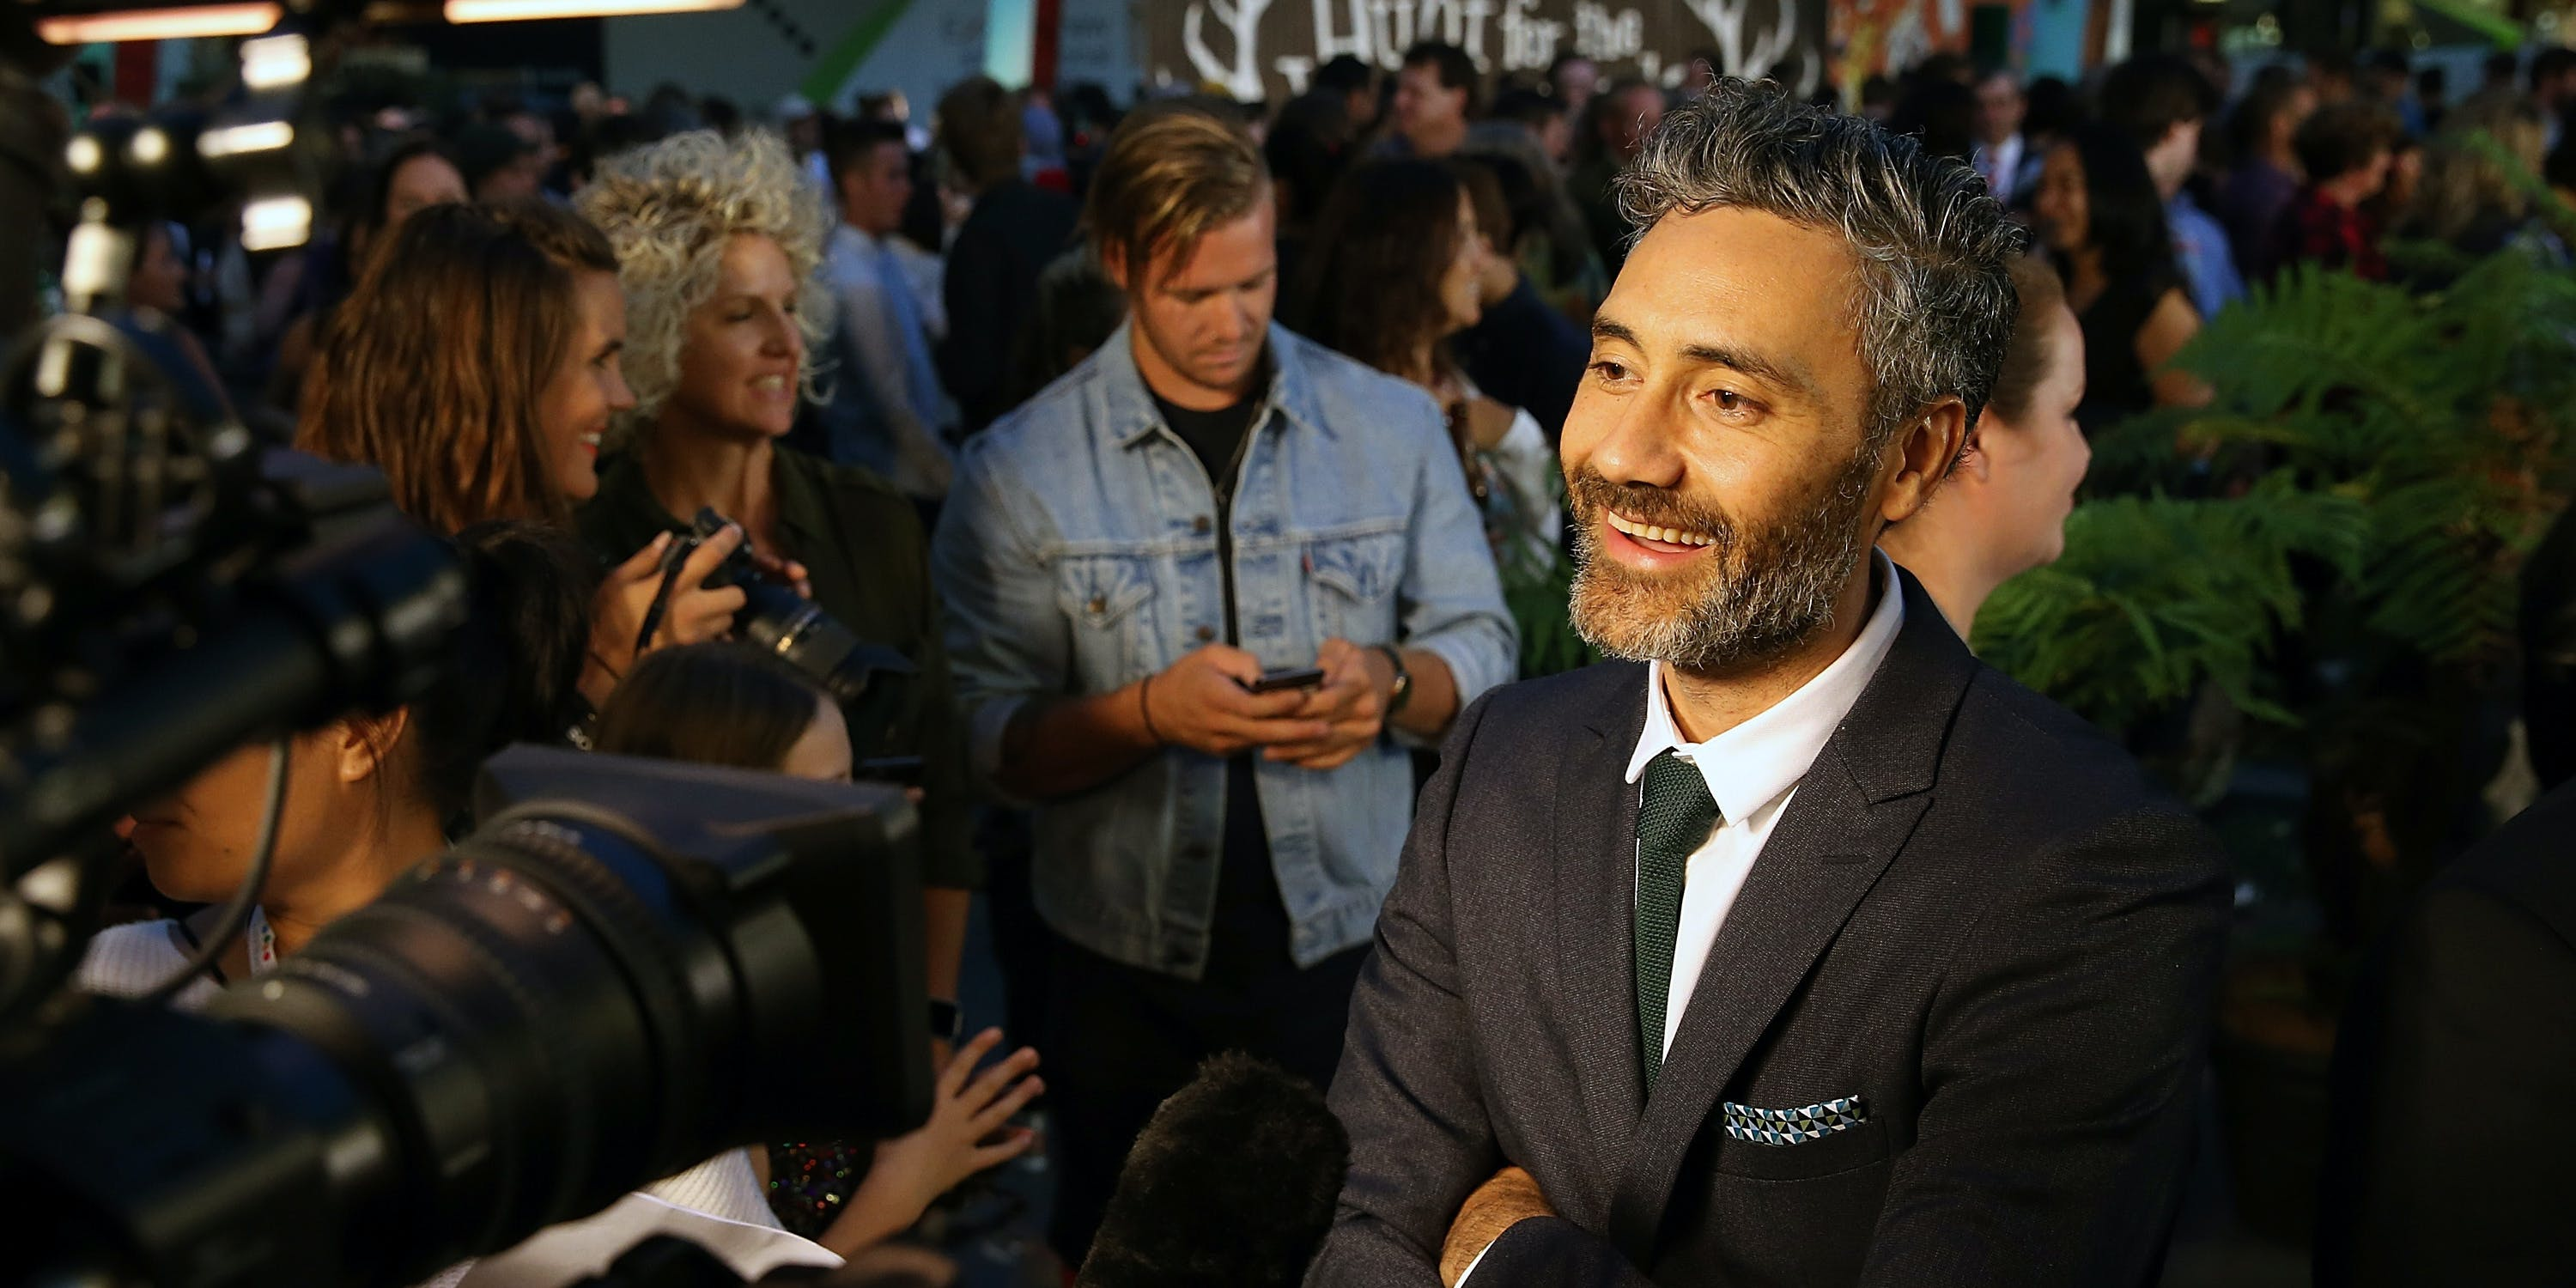 AUCKLAND, NEW ZEALAND - MARCH 30:  Director Taika Waititi speaks to media as he arrives ahead of the New Zealand premiere of Hunt For The Wilderpeople on March 30, 2016 in Auckland, New Zealand.  (Photo by Fiona Goodall/Getty Images)